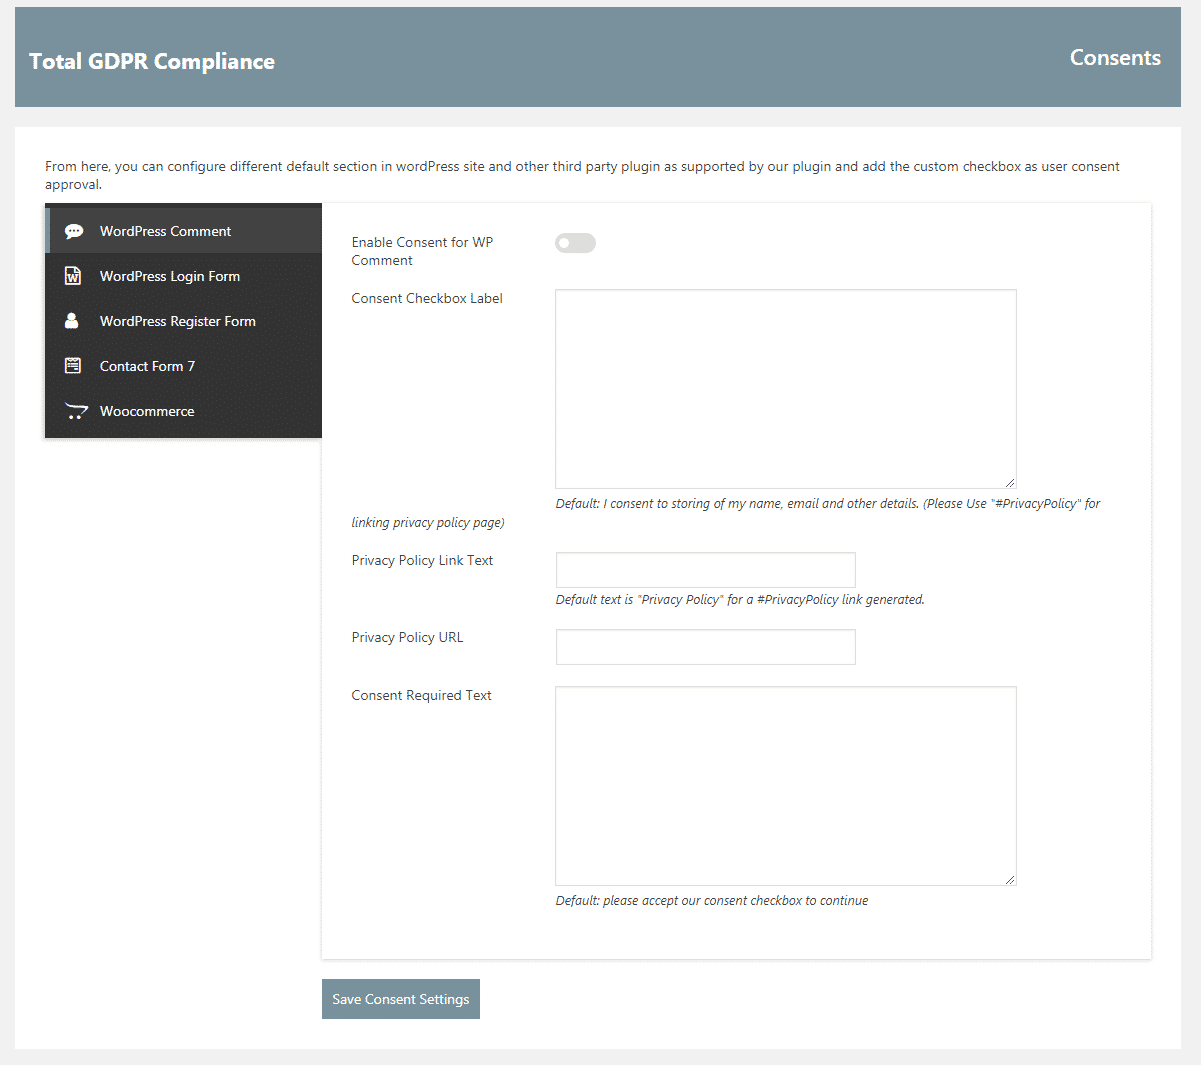 Total GDPR Compliance: Plugin Consents